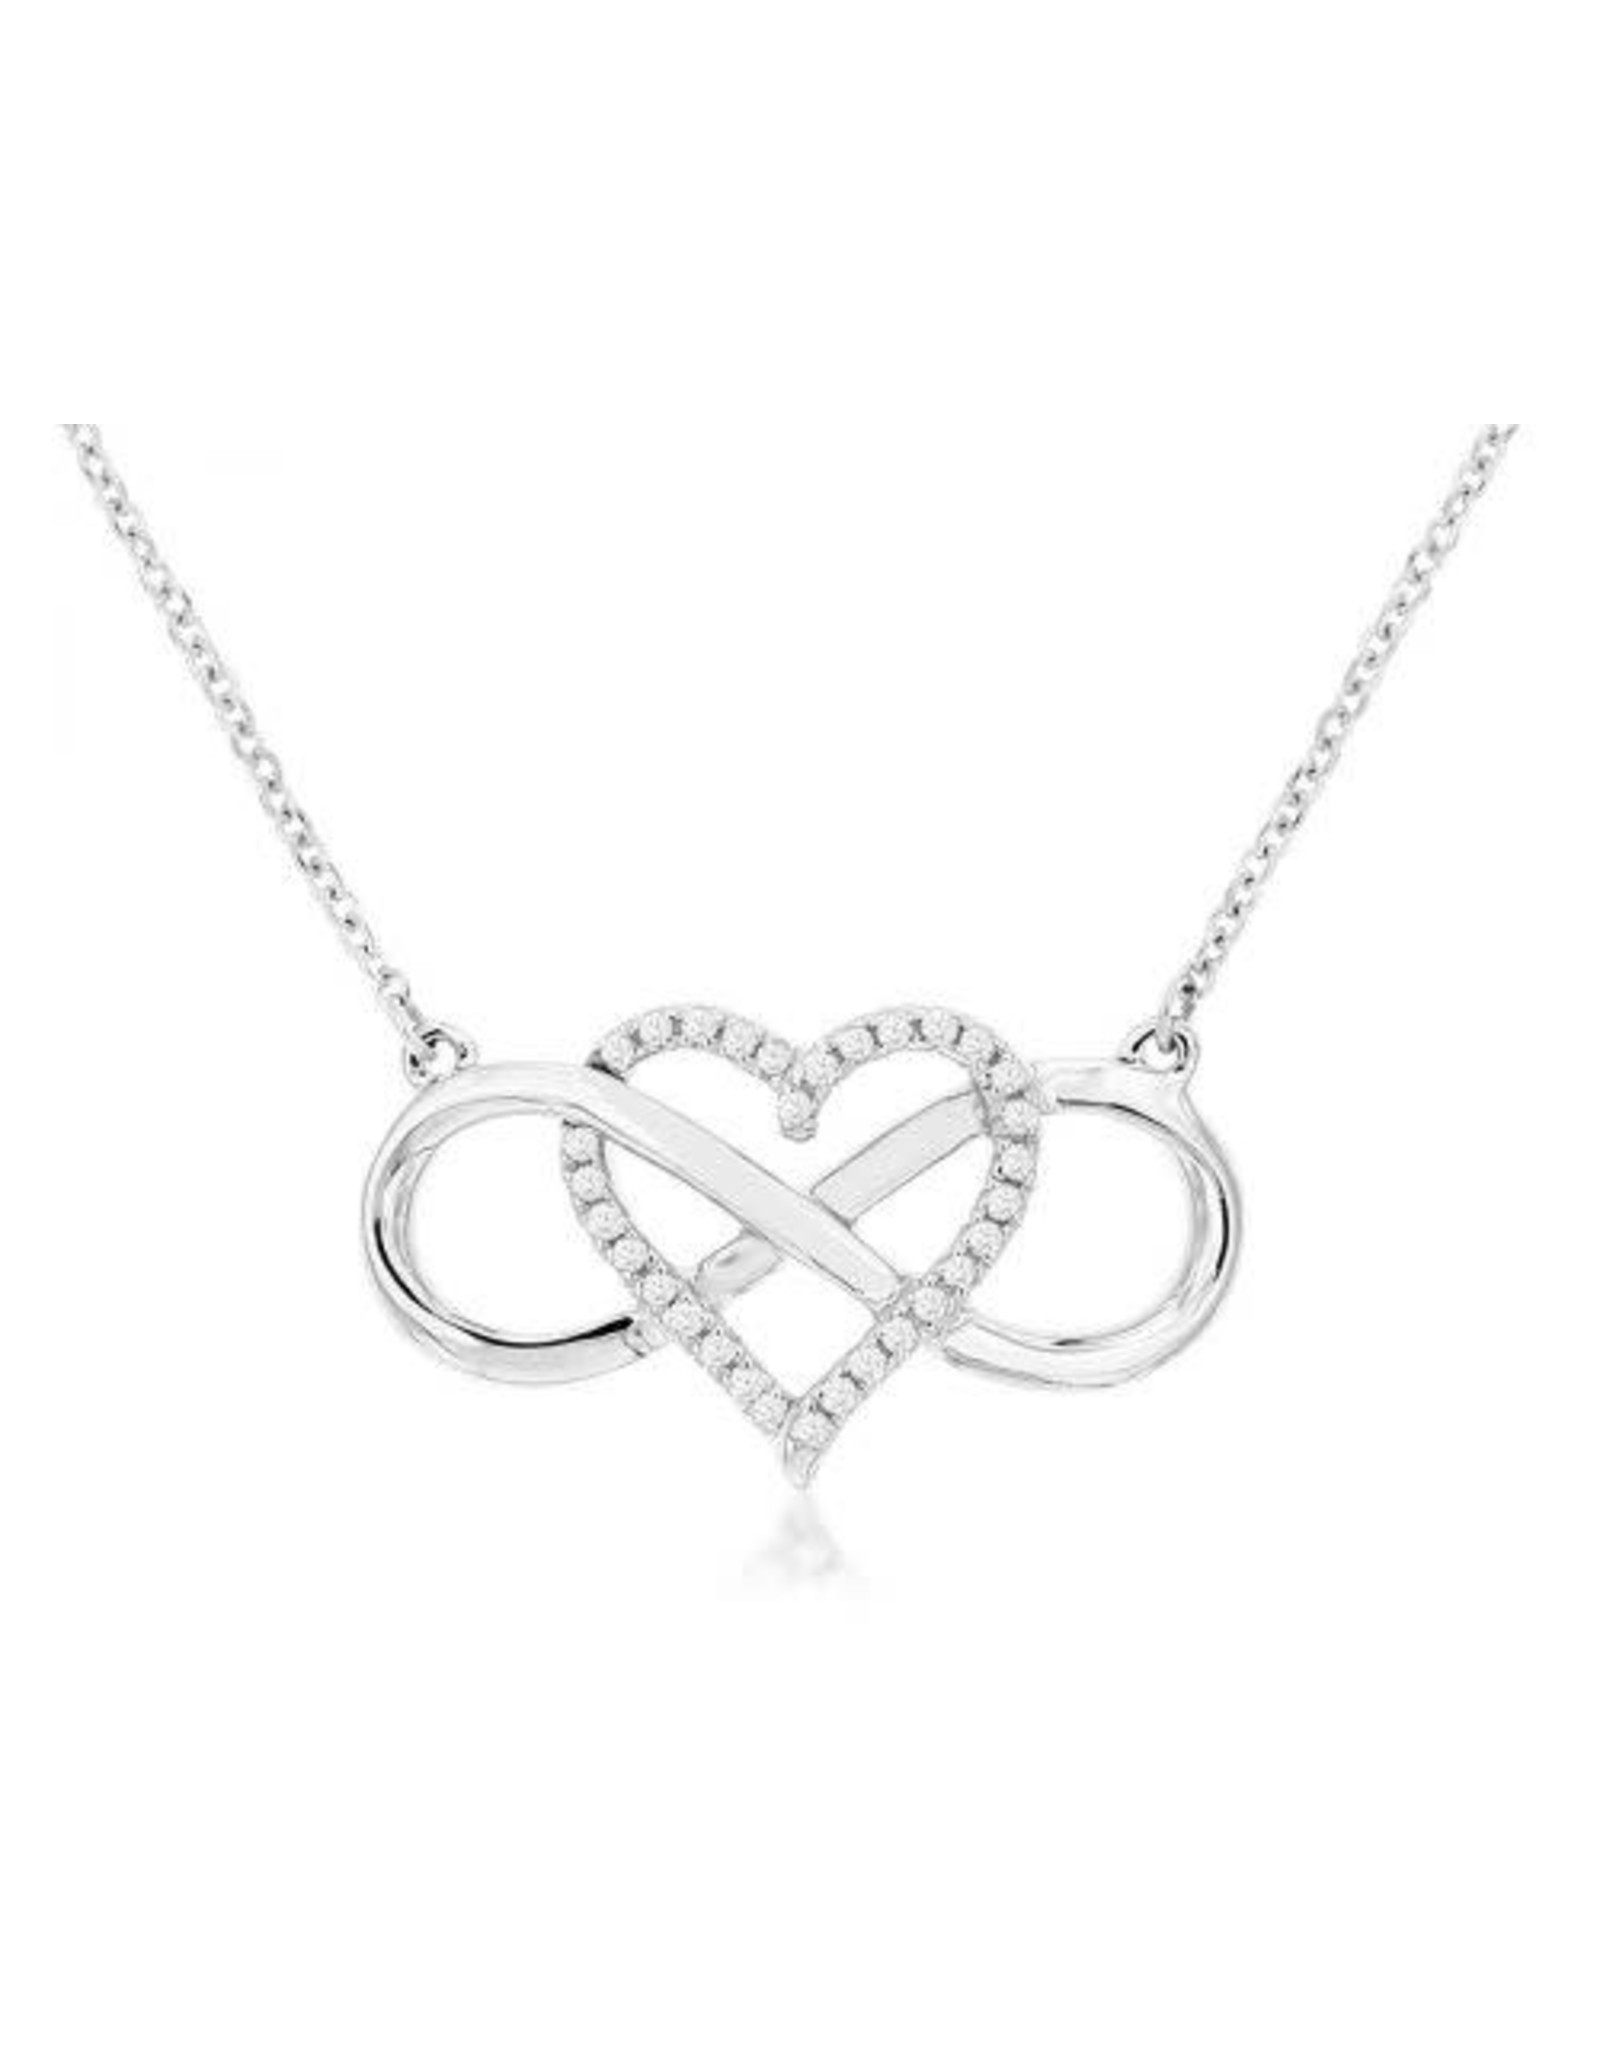 14K White Gold Woven Infinity & Diamond Heart Necklace, D: 0.09ct